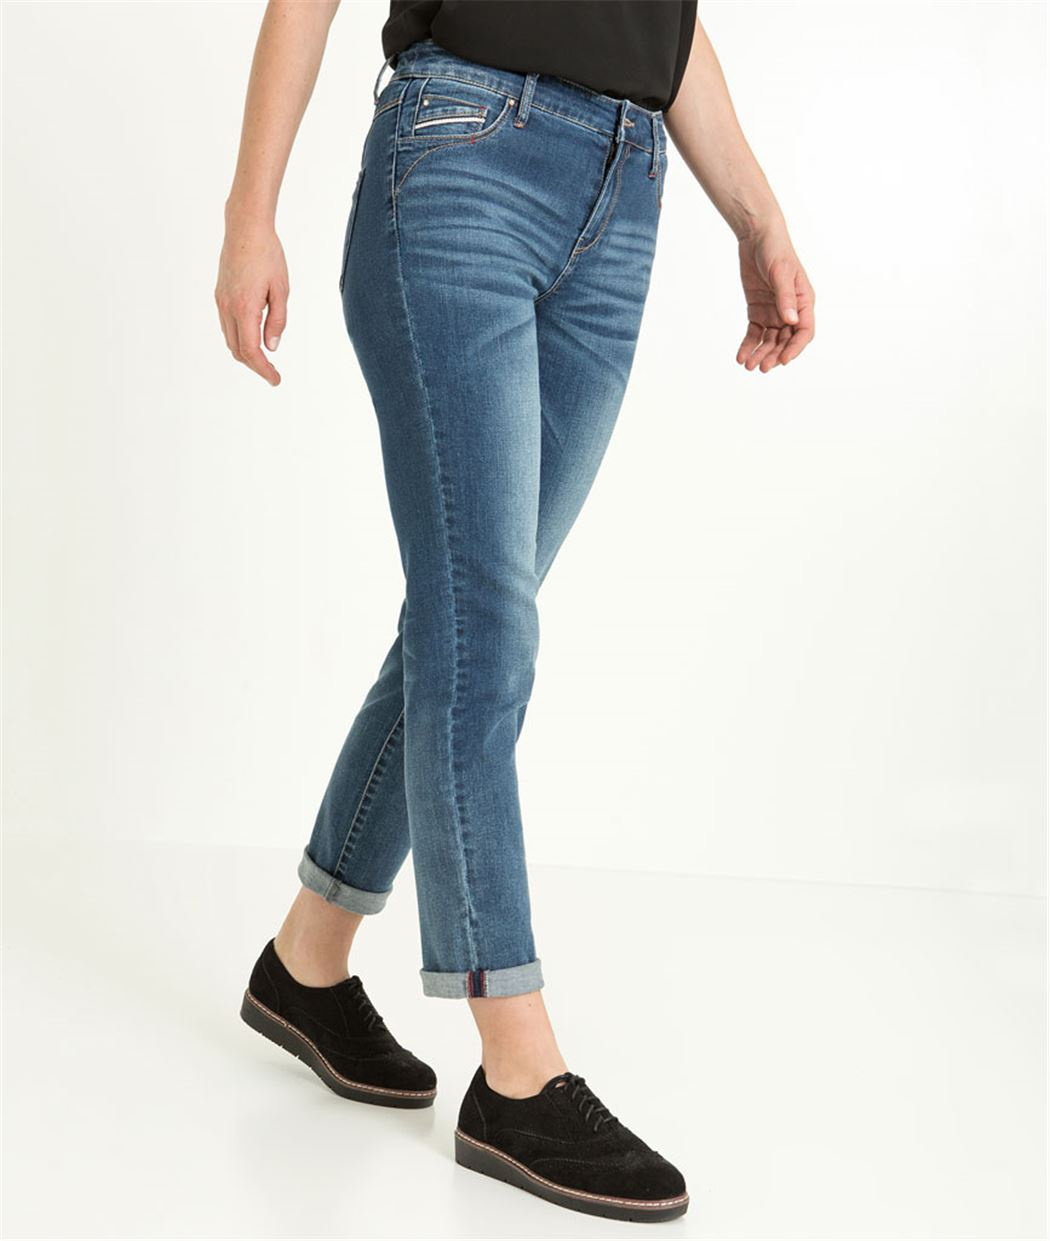 Pantalon raccourci femme denim stretch STONE